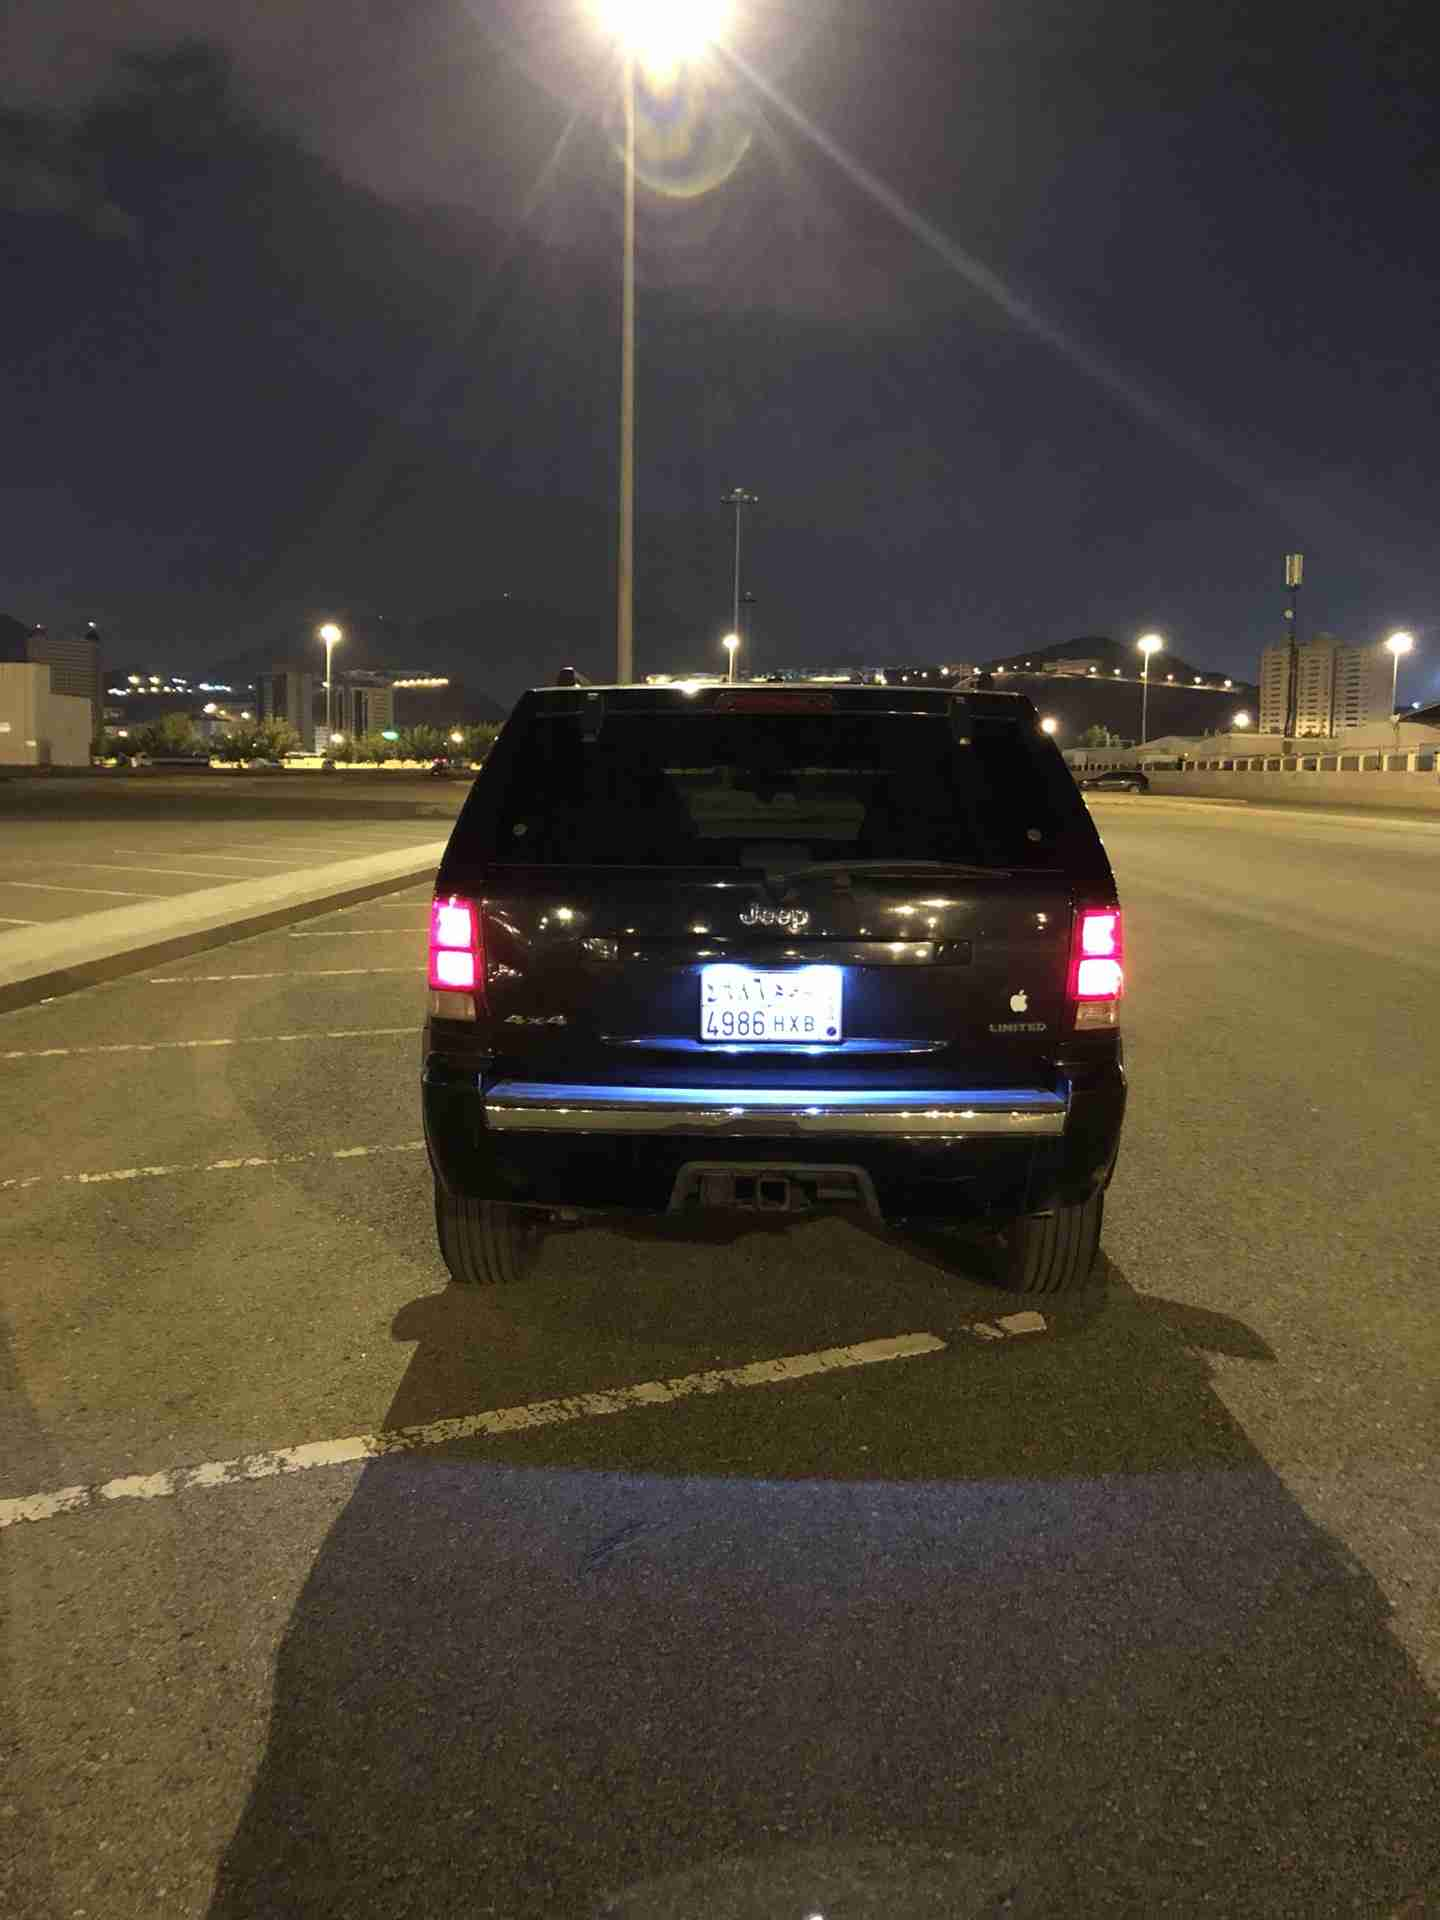 I am advertising my 2015 Mercedes Benz G63 AMG for sale, the car is in good and excellent condition, low mileage, perfect tires, accident-free and no any mechan-  جراند شيروكي 2005 للبيع...